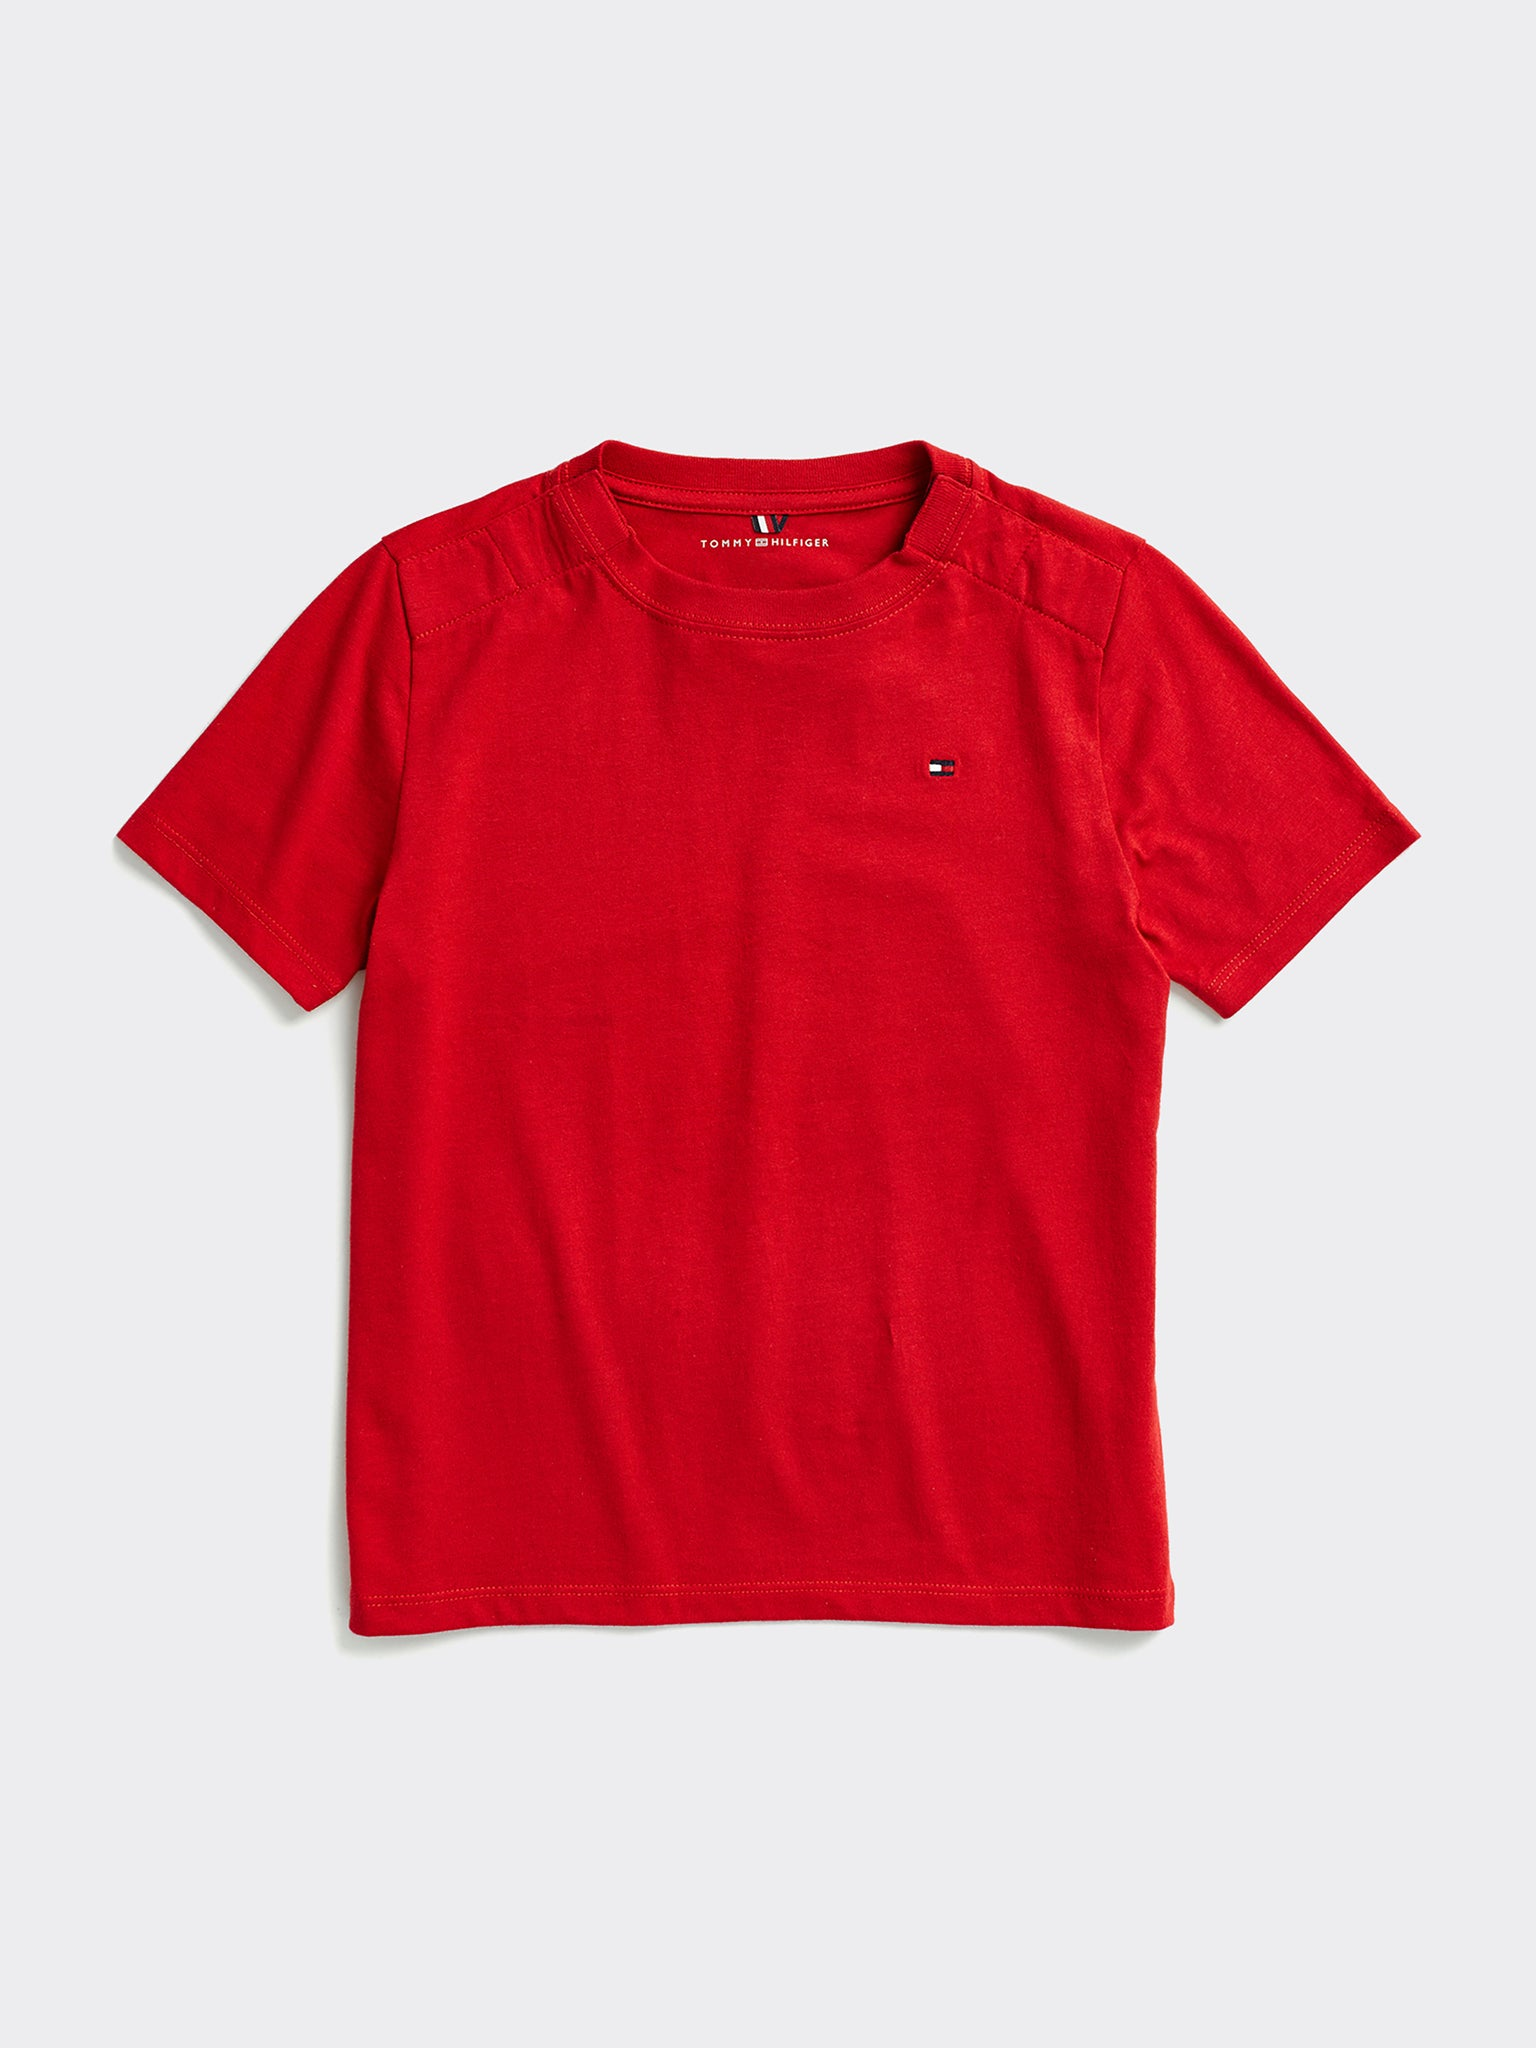 Tommy Crew Tee (Boys) - Red